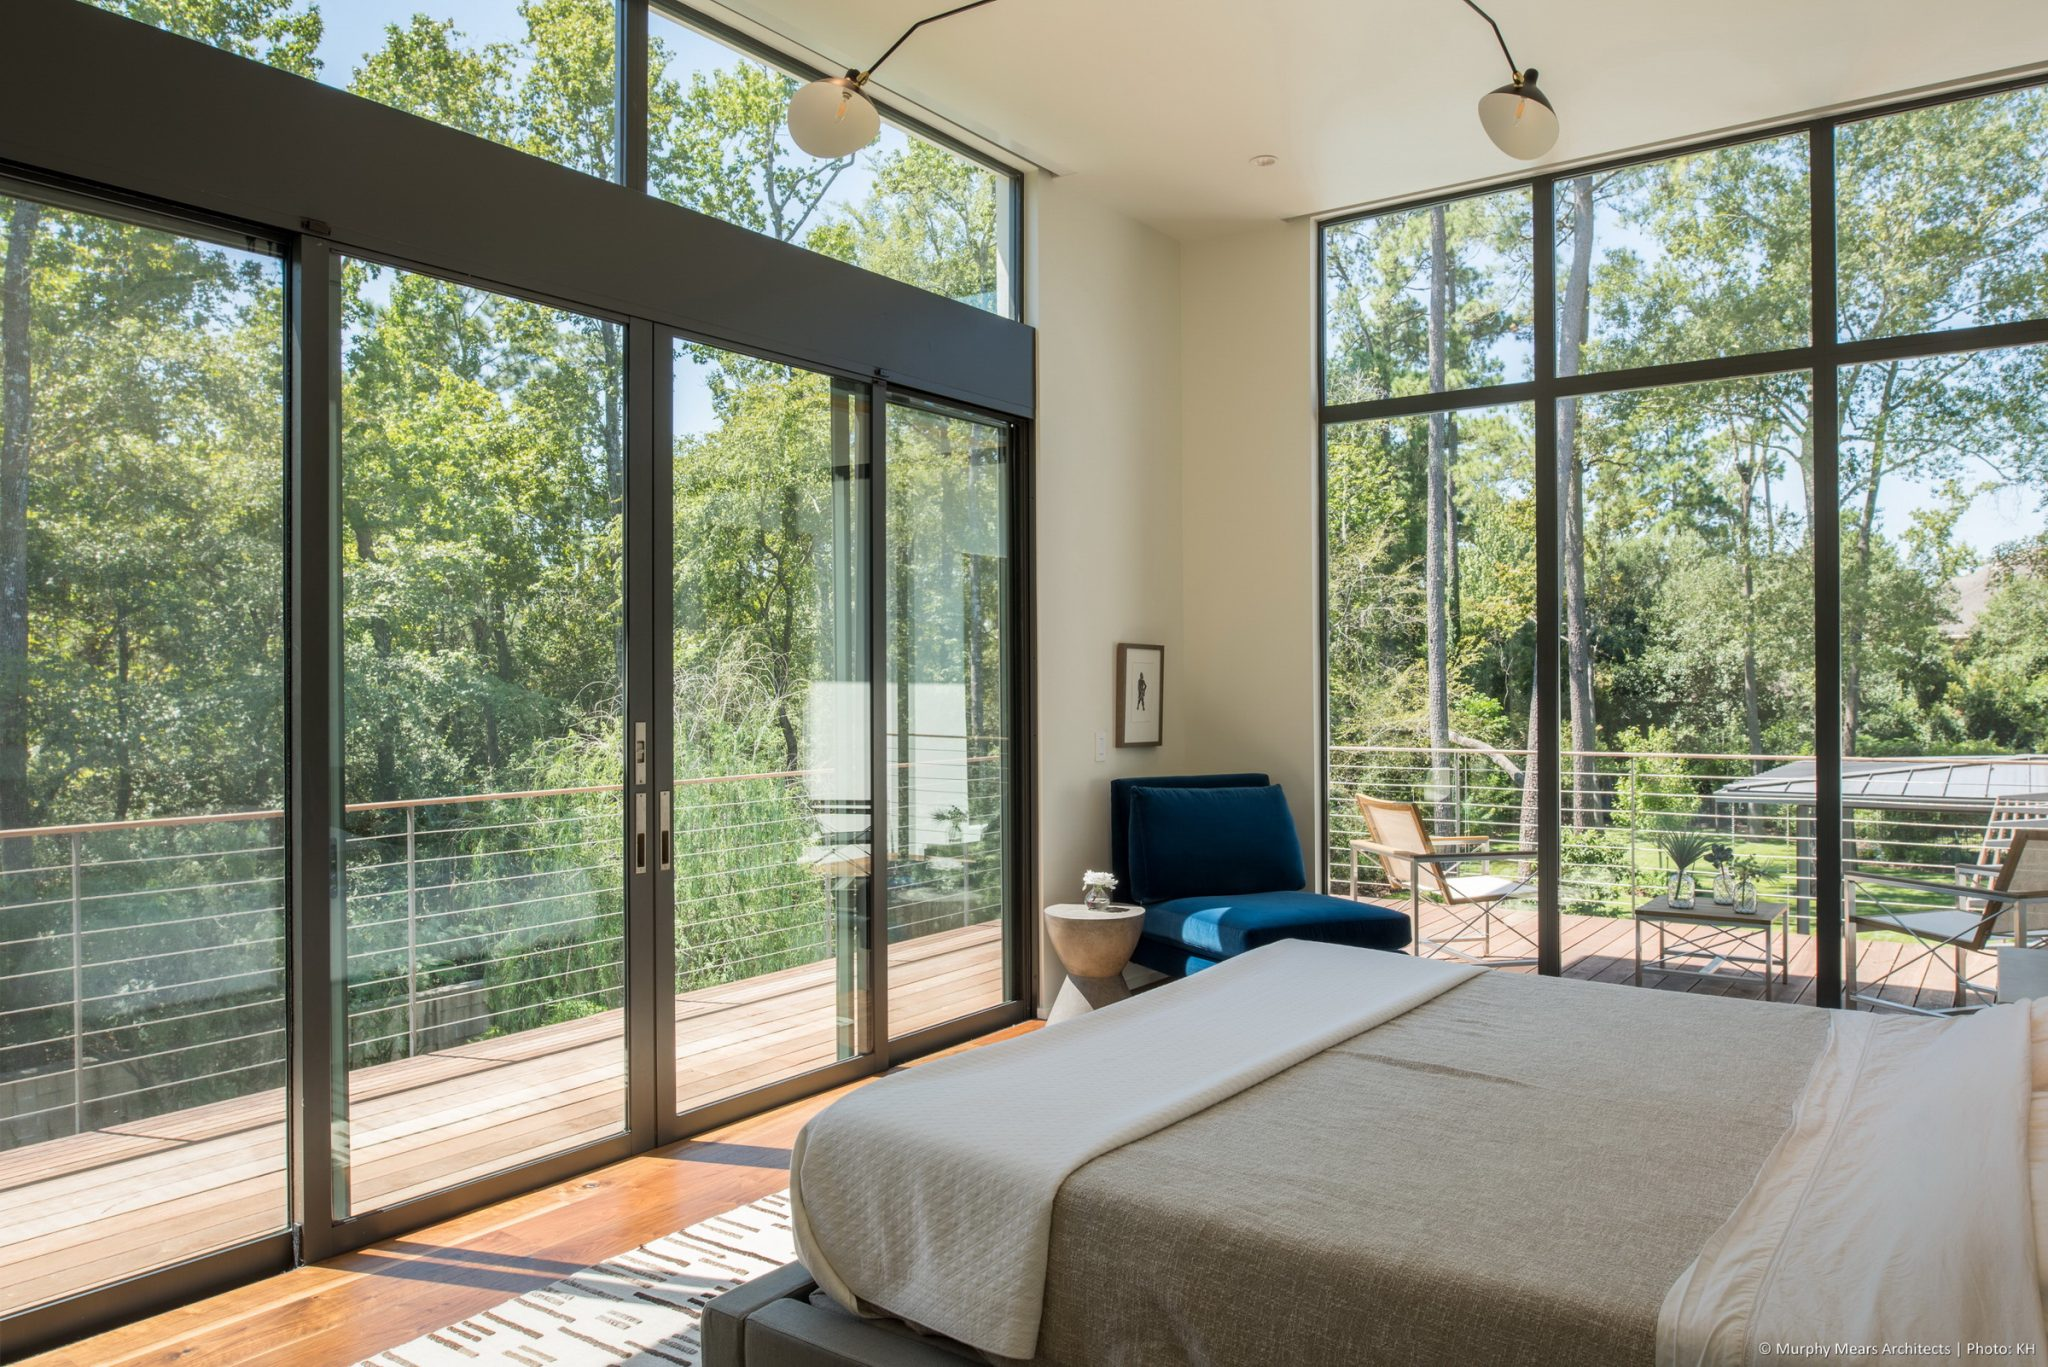 Open House - Sliding glass doors open up to the wood and steel master balcony which overlooks the dense green backyard landscape.